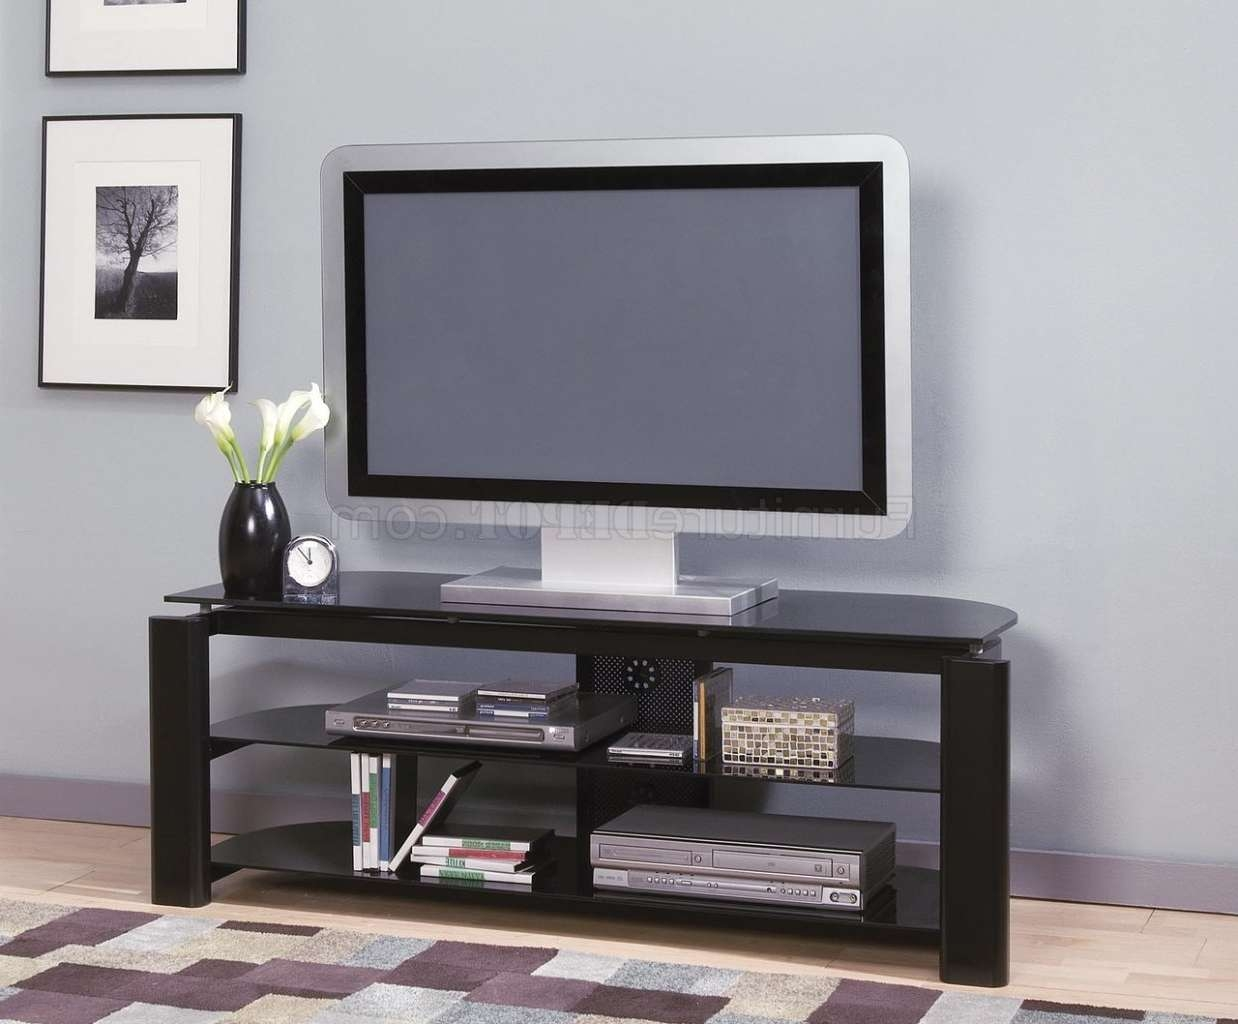 New Contemporary Glass Tv Stands 38 In Home Decoration Ideas With Regarding Contemporary Glass Tv Stands (View 10 of 15)